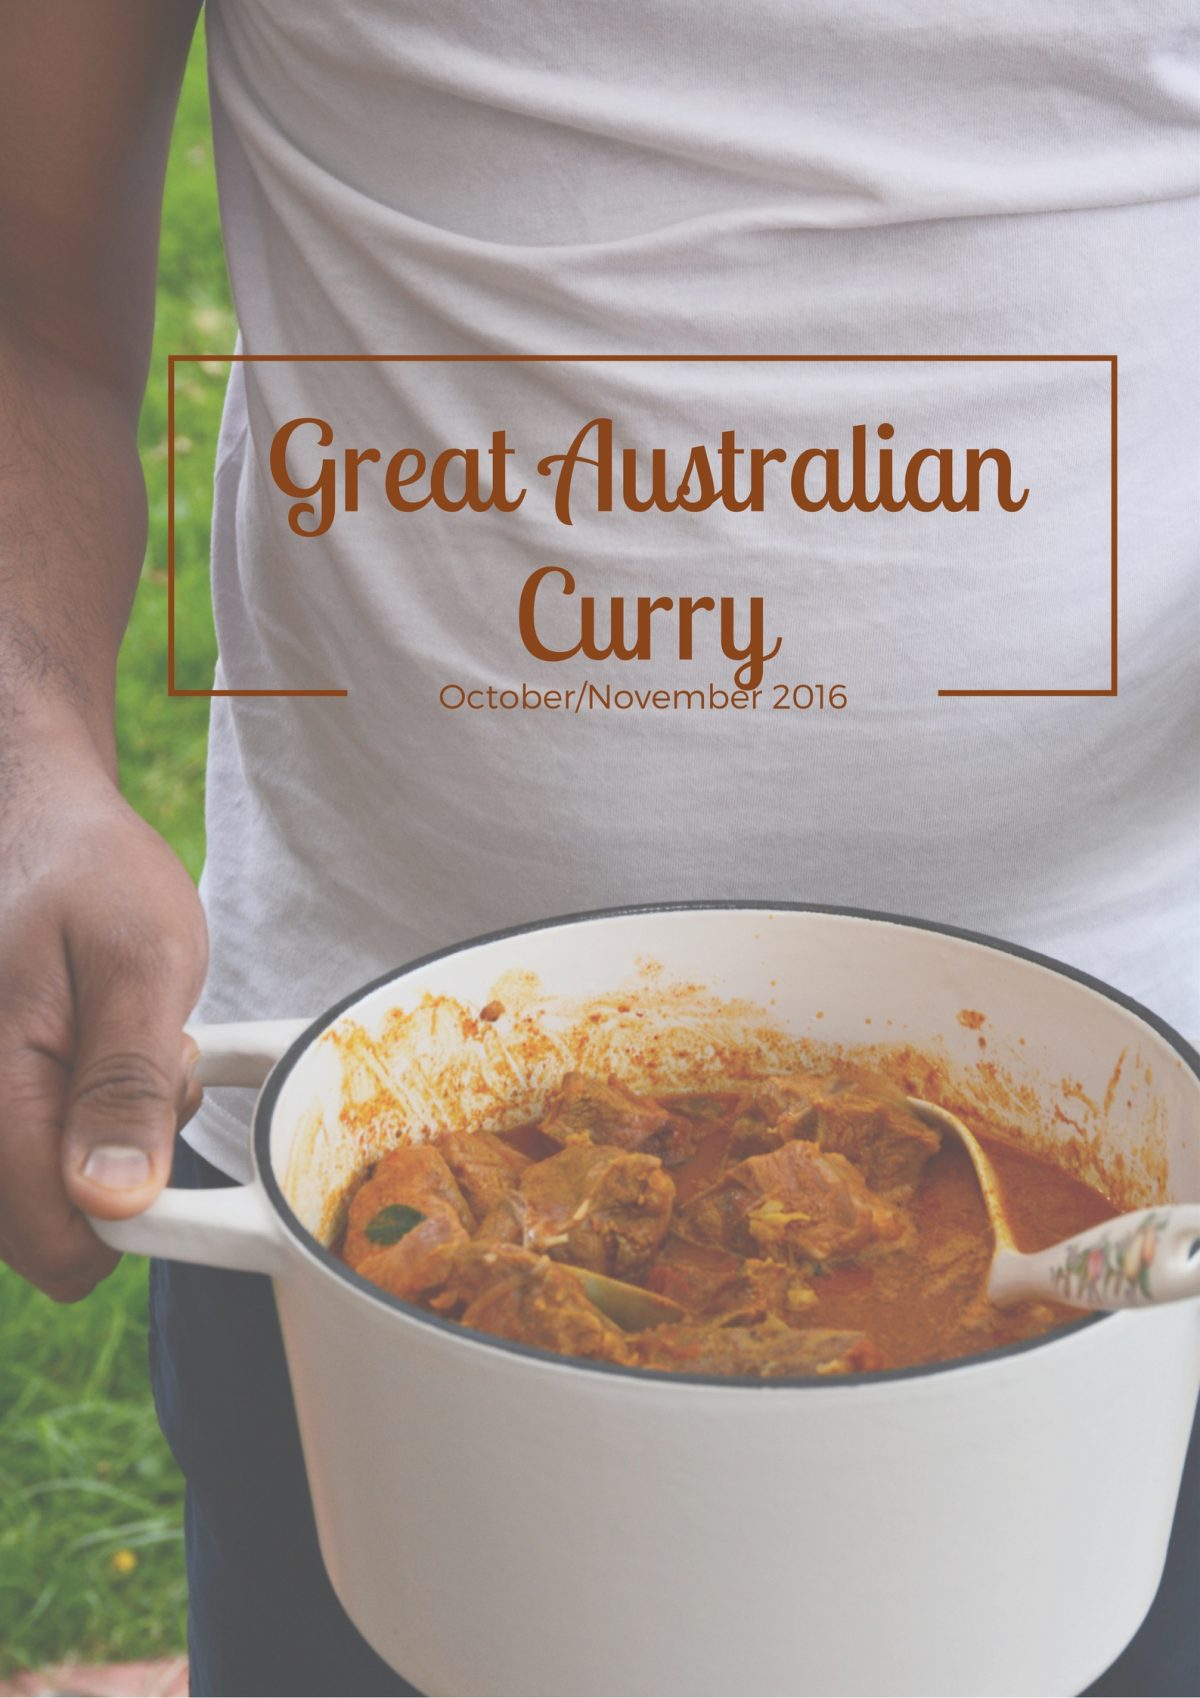 Celebrating the 'Great Australian Curry' with a Delicious Jaffna style Goat Curry - thespiceadventuress.com